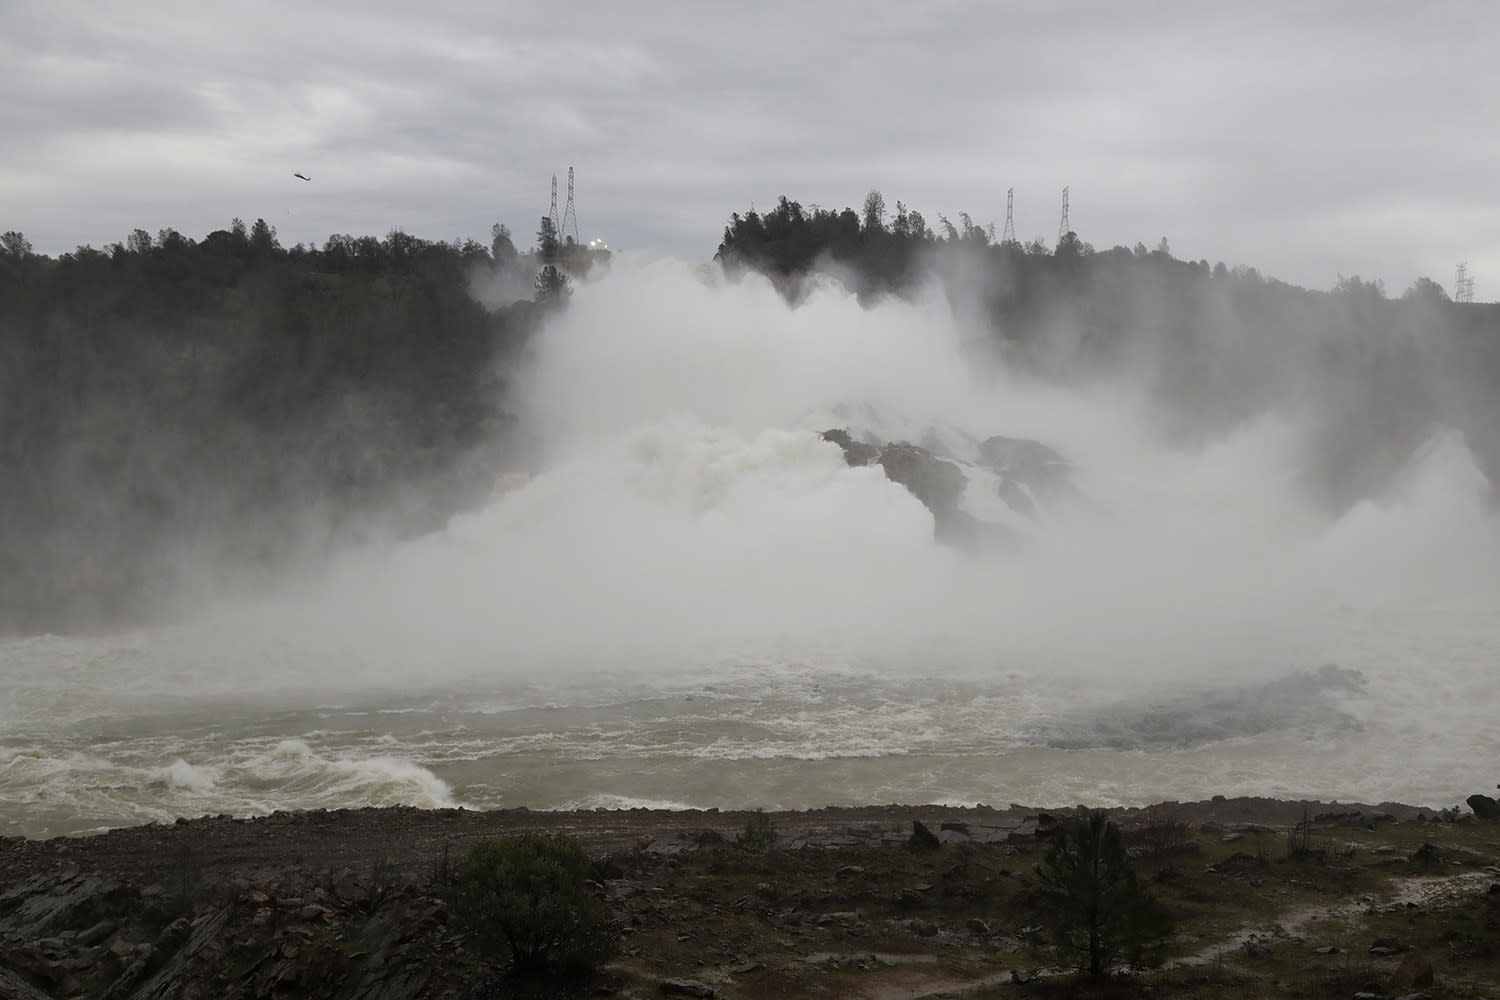 <p>Water gushes down the Oroville Dam's main spillway, Feb. 15, 2017, in Oroville, Calif. (AP Photo/Marcio Jose Sanchez) </p>